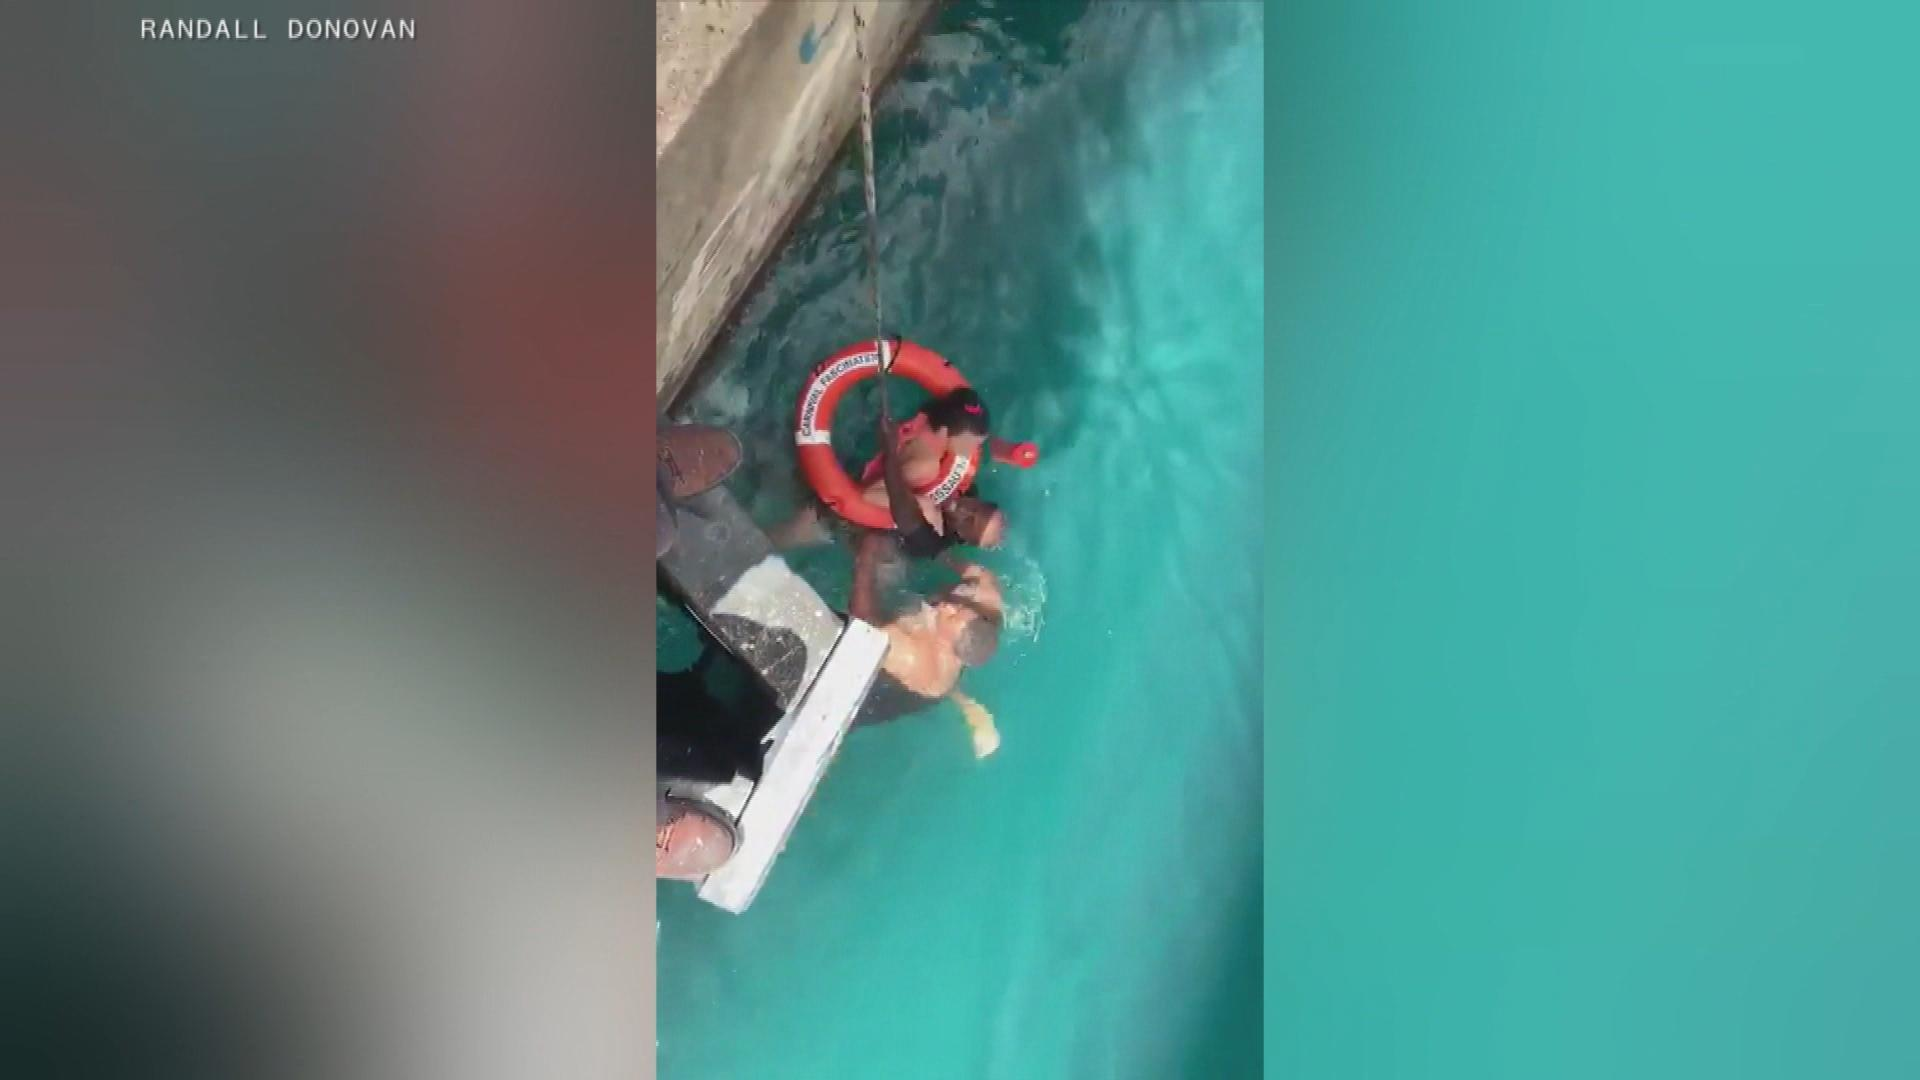 Video shows rescue of cruise-ship passenger in wheelchair who fell from dock into water